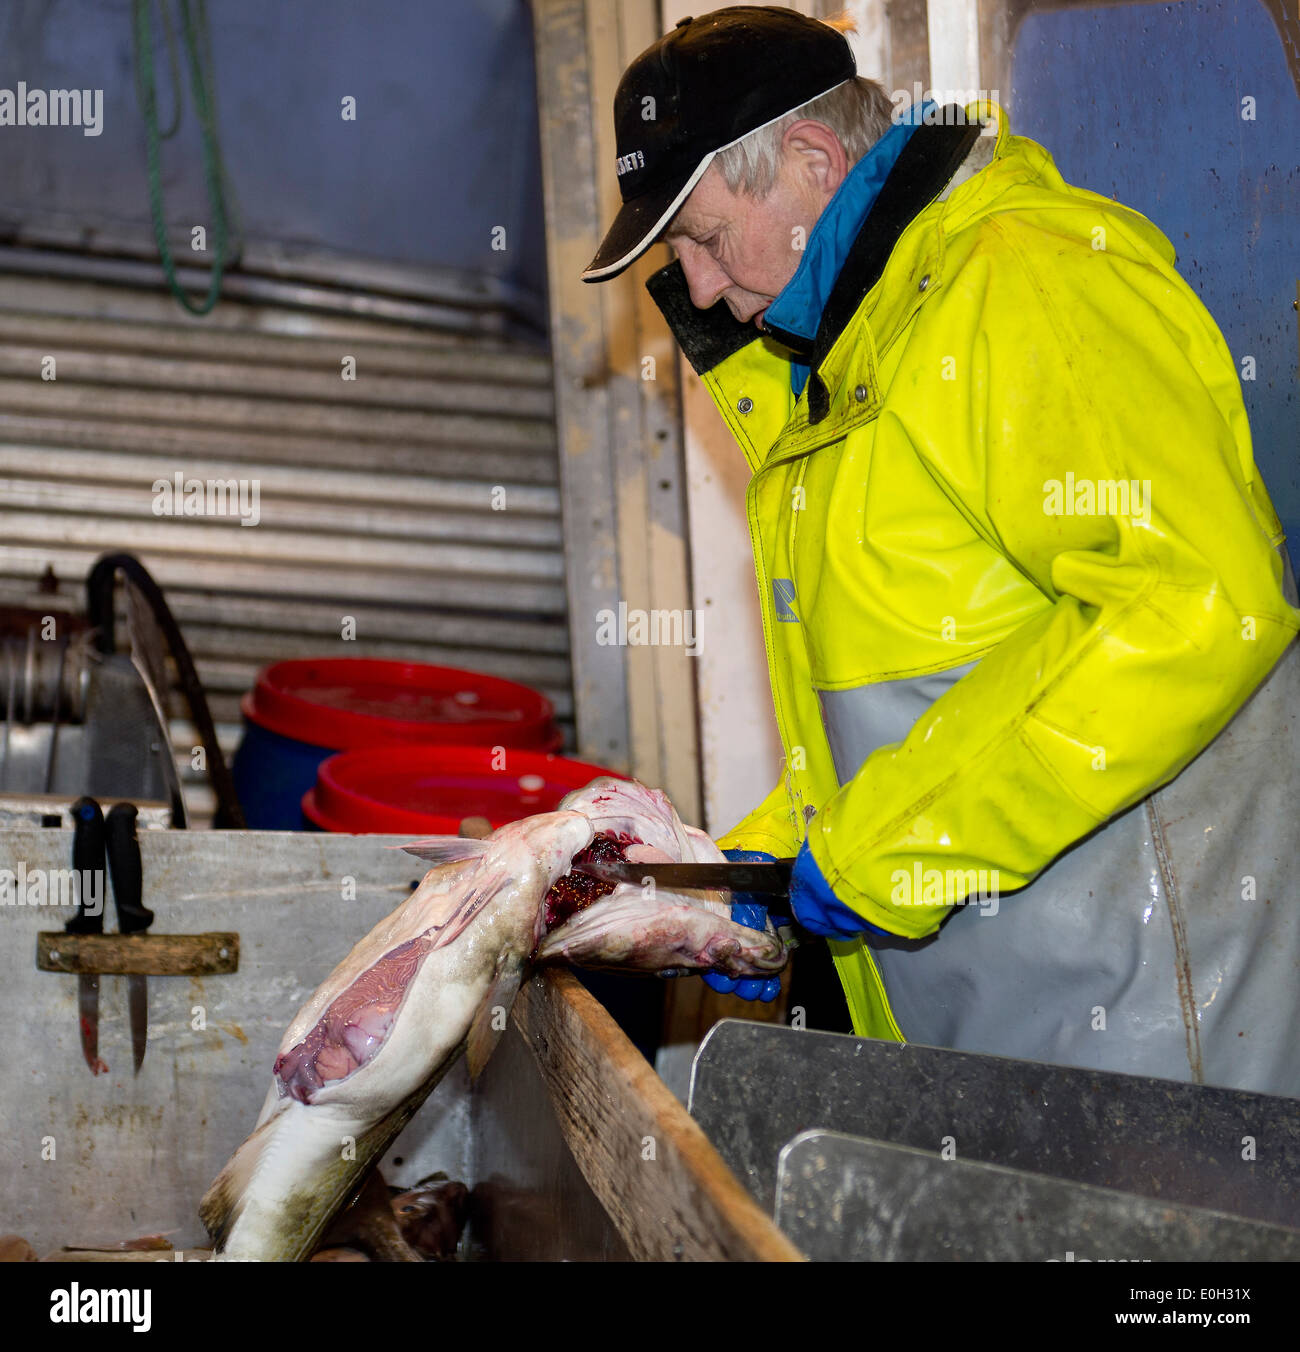 Today's catch of cod is slaughtered on board. From Lofoten, February - Stock Image